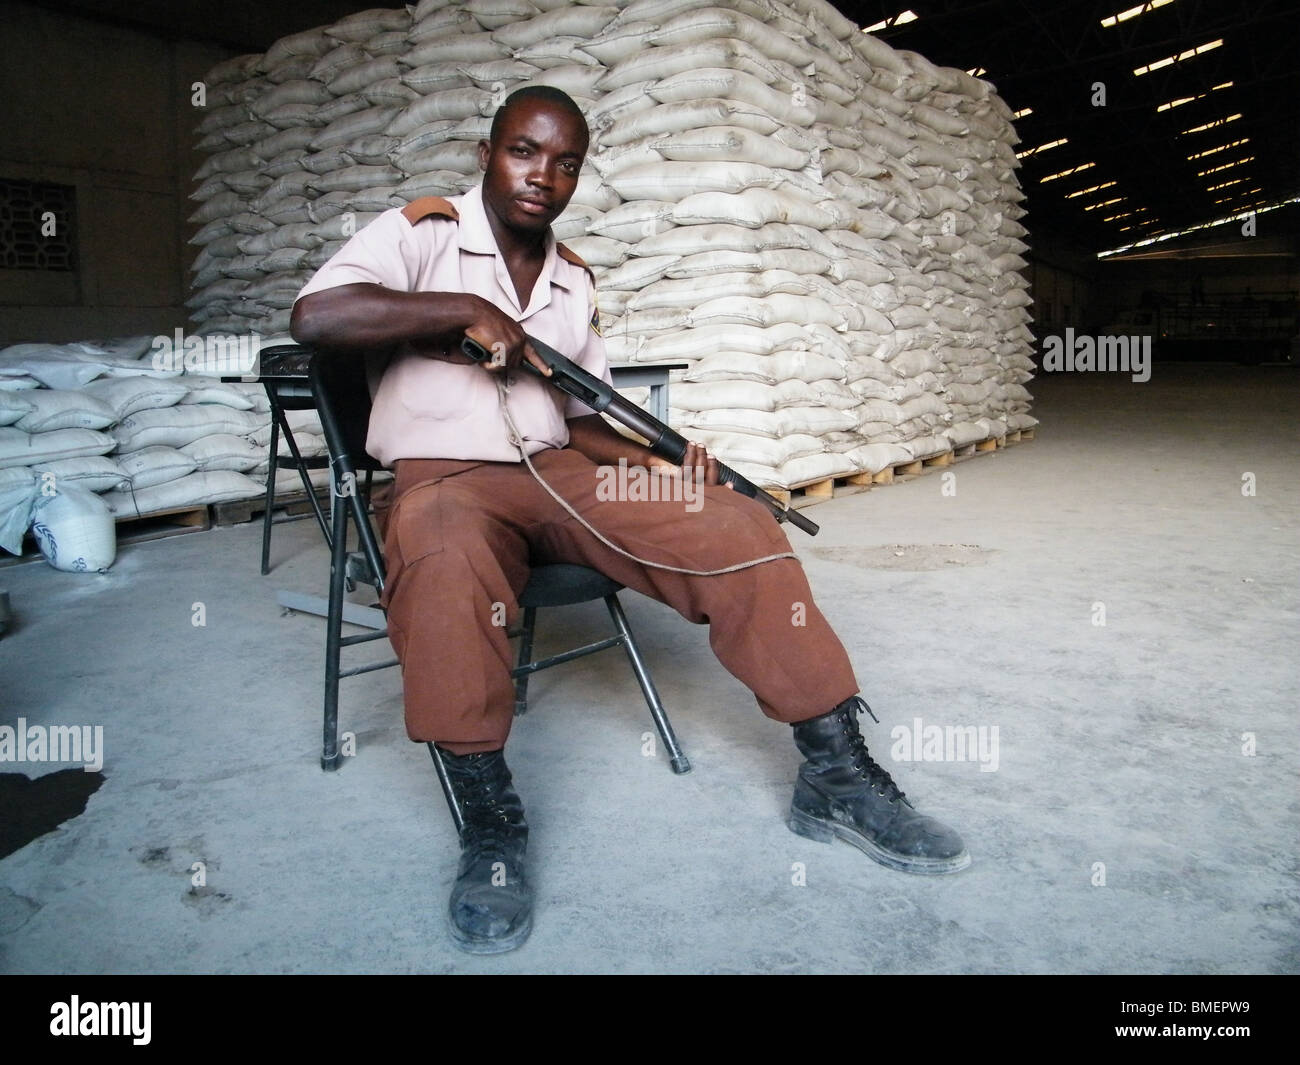 An armed man guards the entrance to a World Food Program warehouse full of donated food aid, Gonaives, Haiti - Stock Image